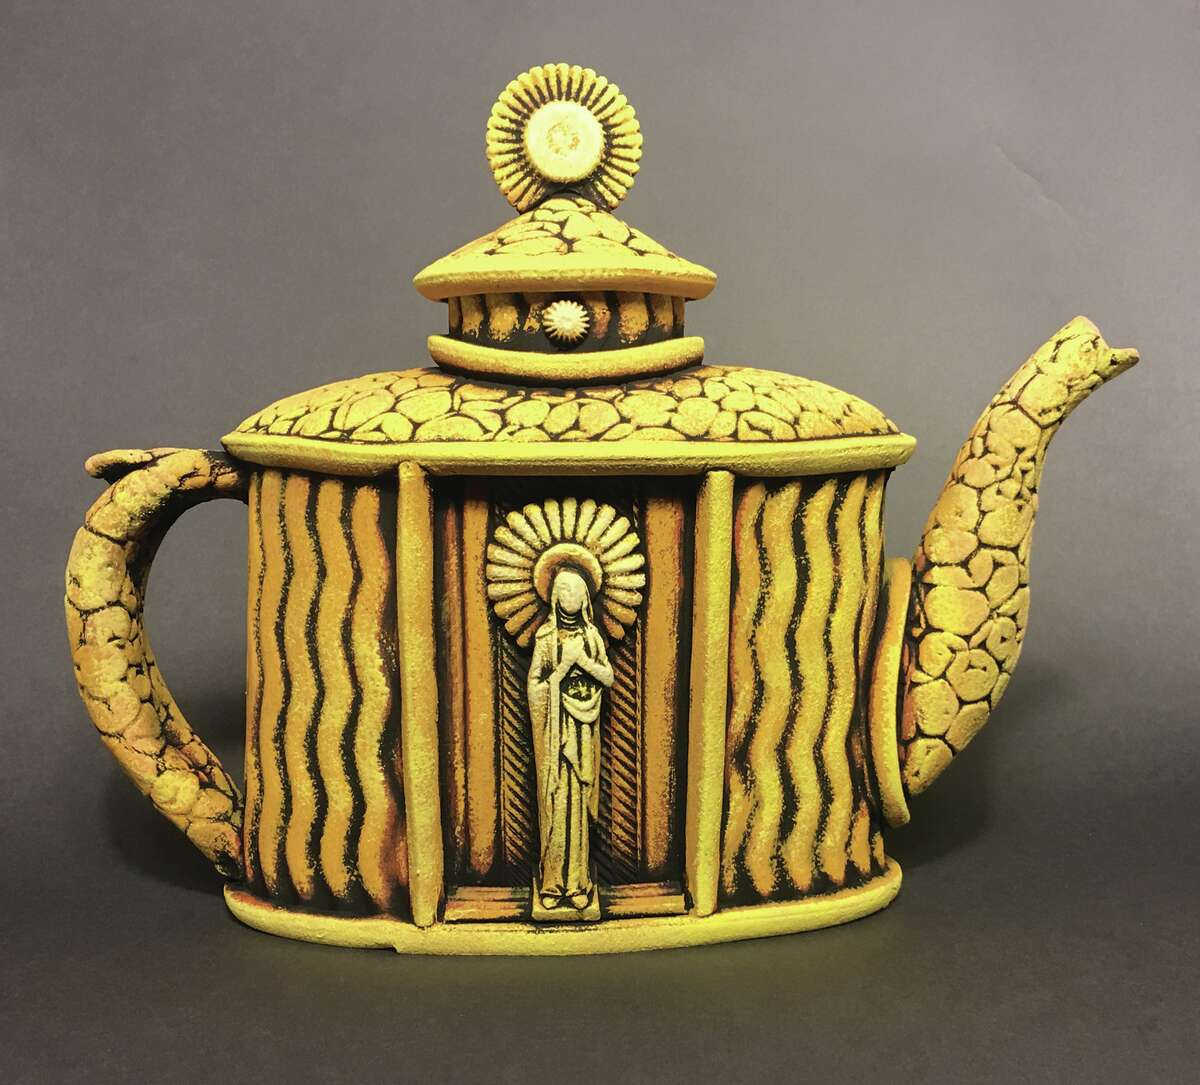 This teapot by Richard Wehrs will be featured in EAC's latest exhibit.